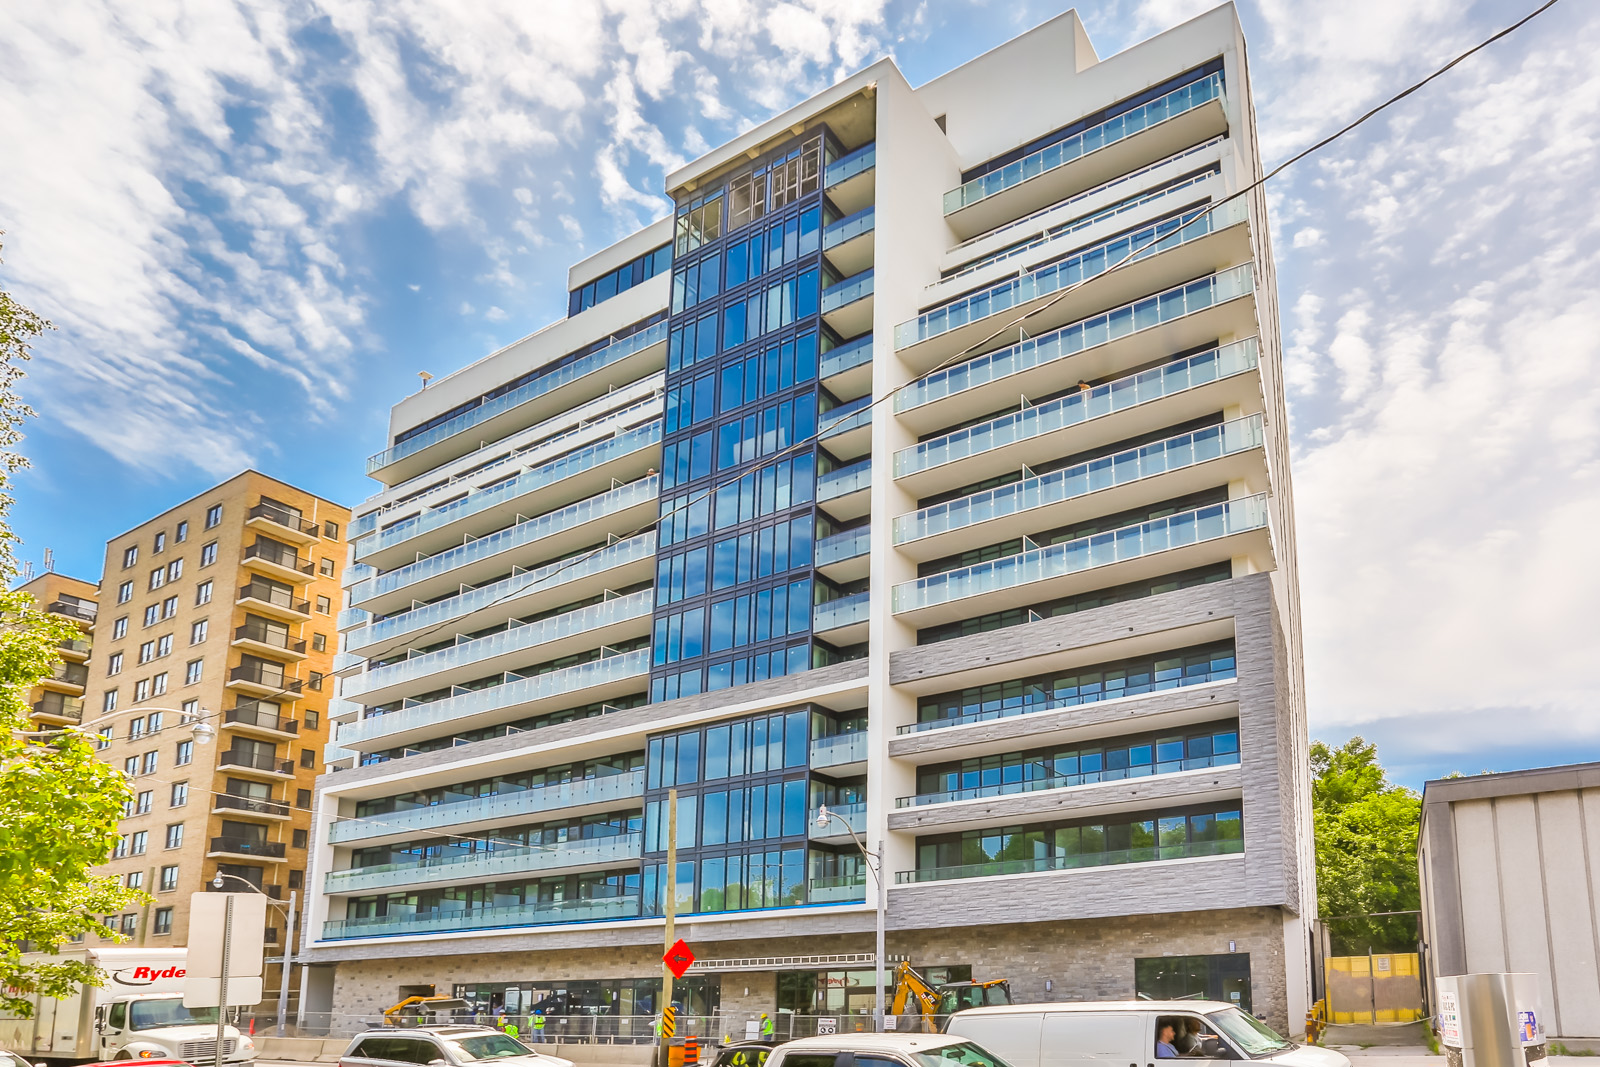 3018-yonge-st-yonge-and-lawrence-condos-for-sale